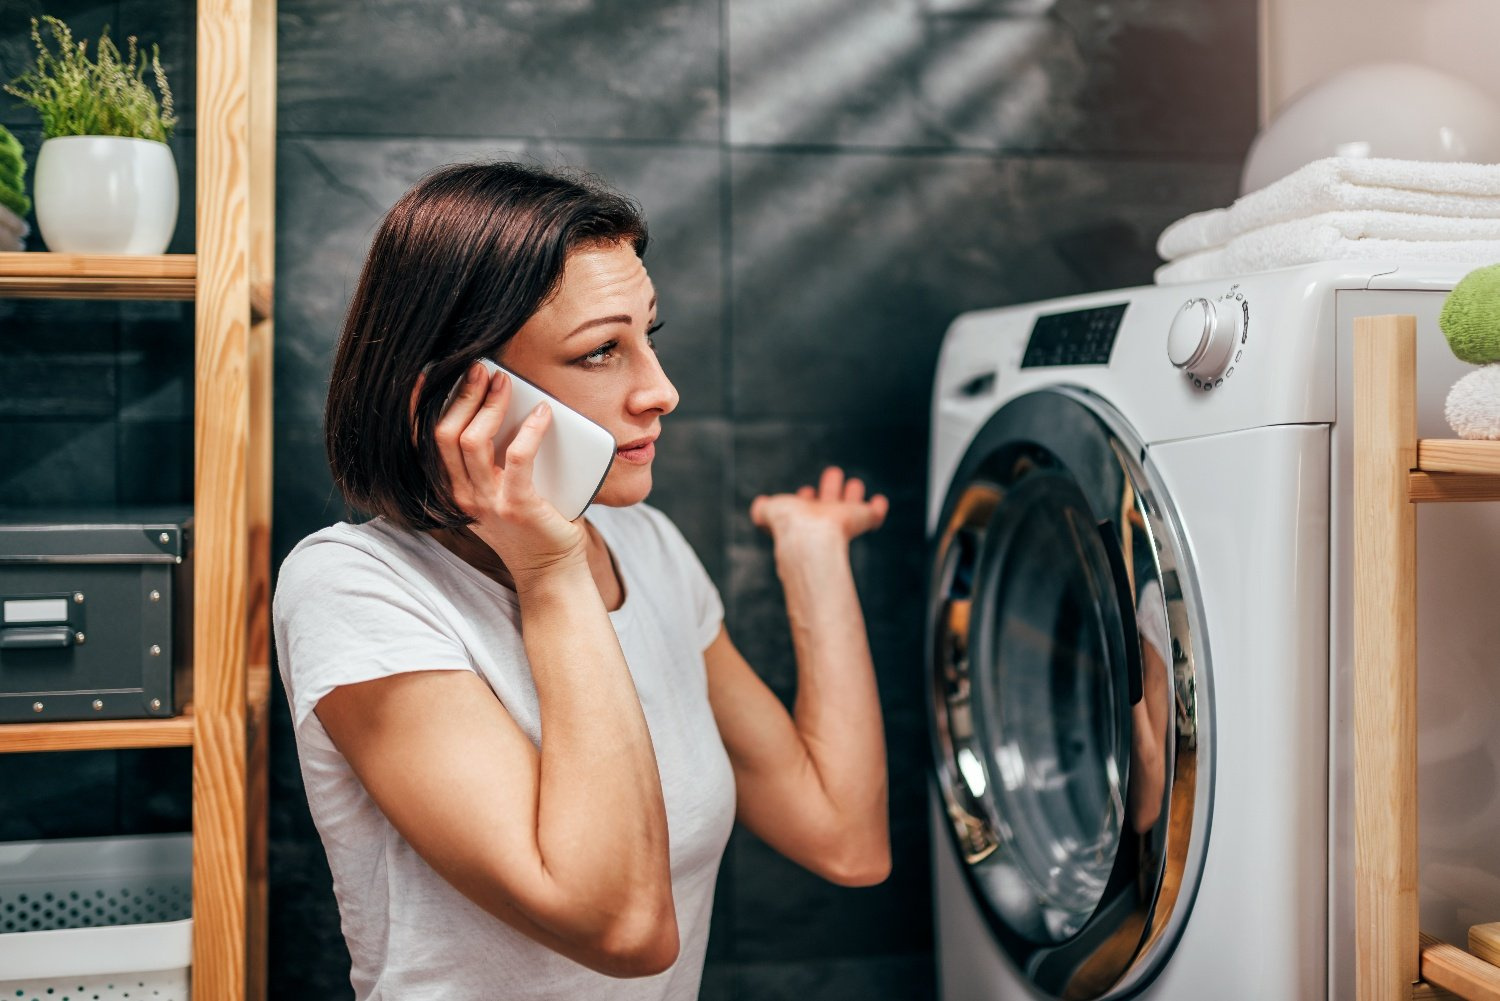 washing machine repair: how to diagnose the problem